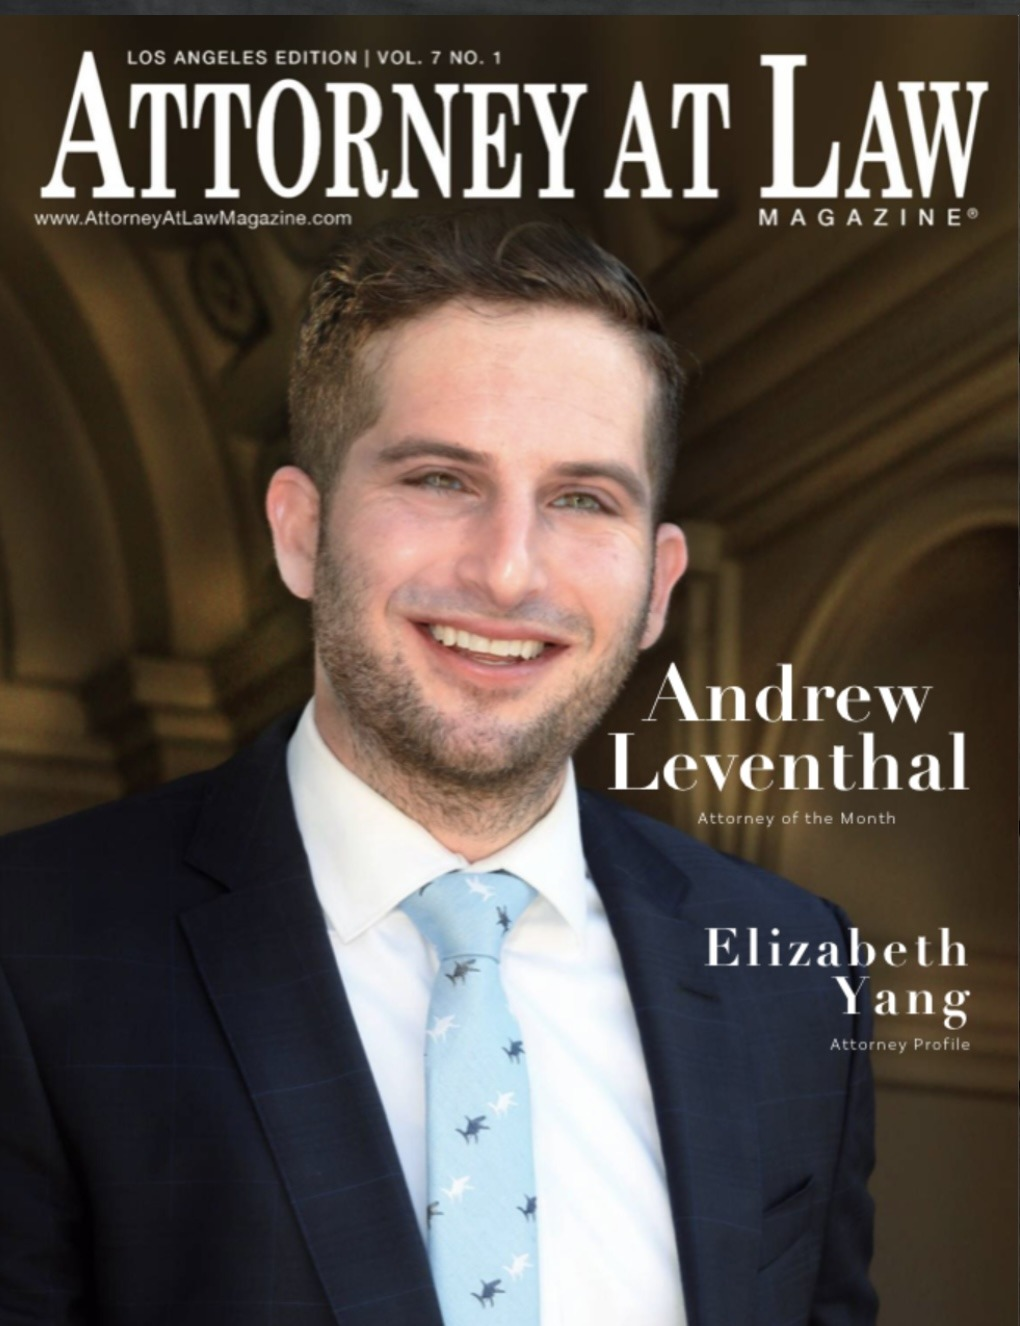 The leventhal firm